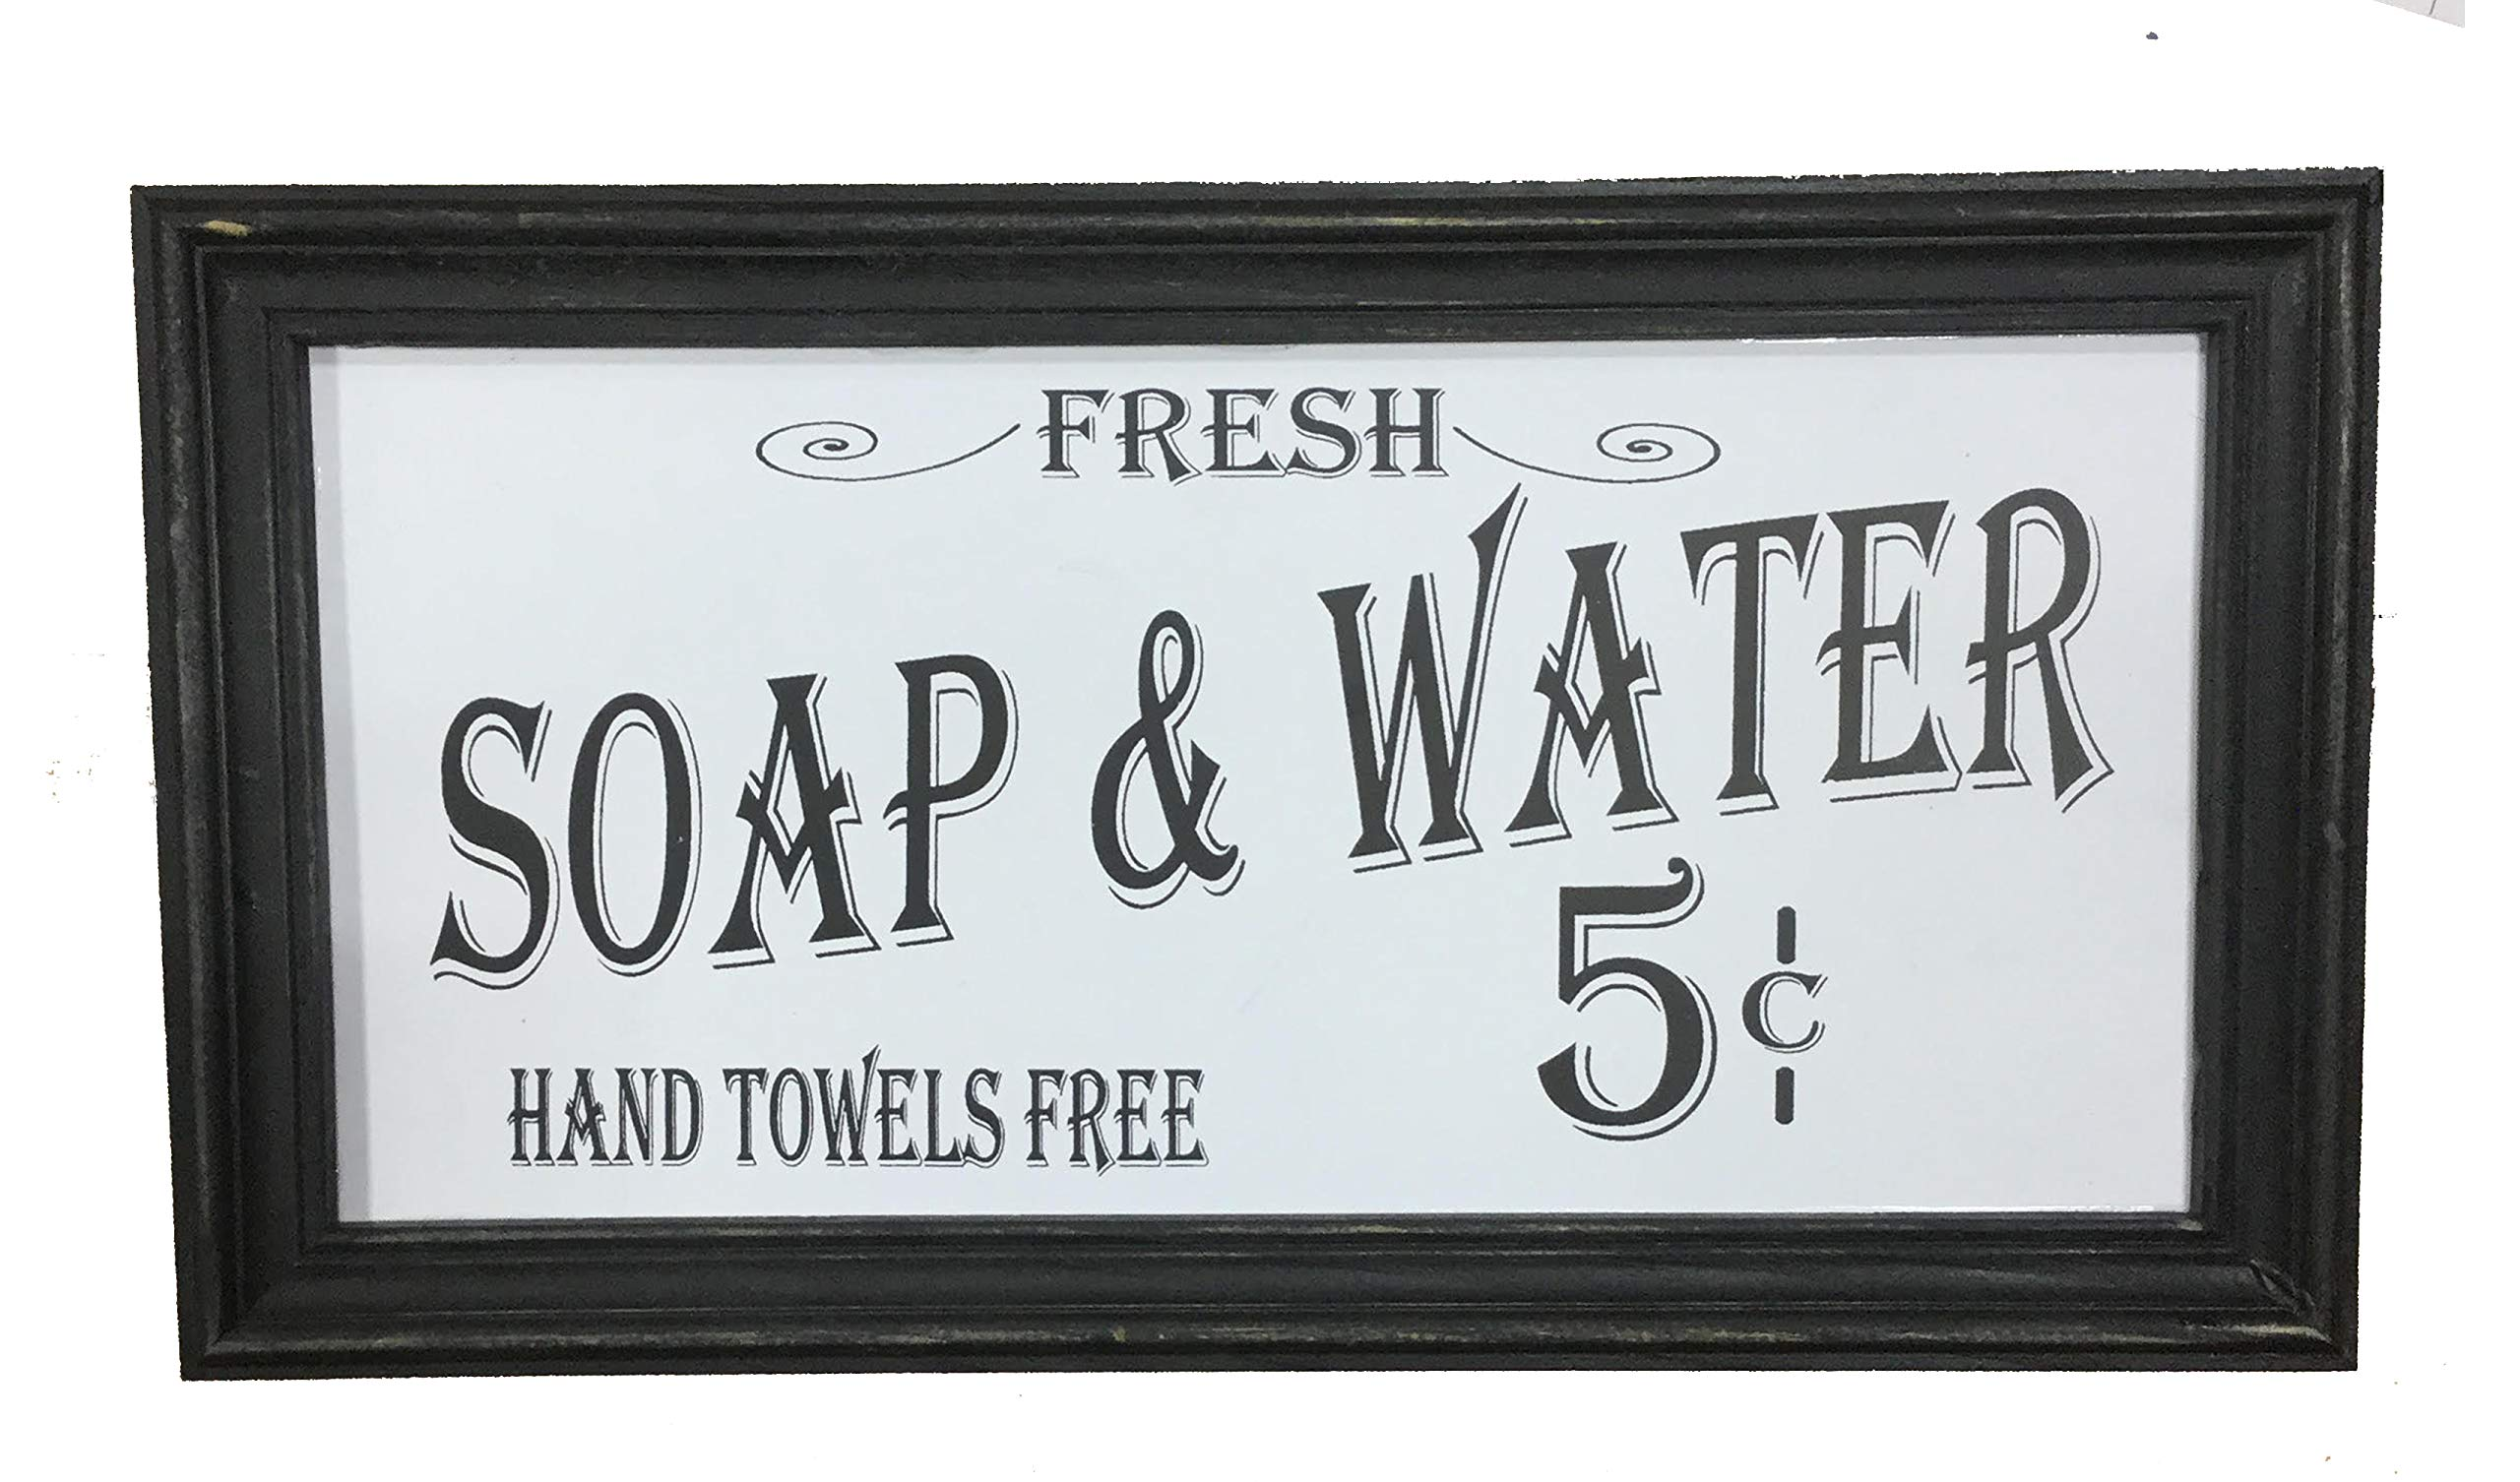 Ohio Wholesale Vintage Soap & Water Bath Sign Distressed Wood Old-Fashioned Script Country Decor, White